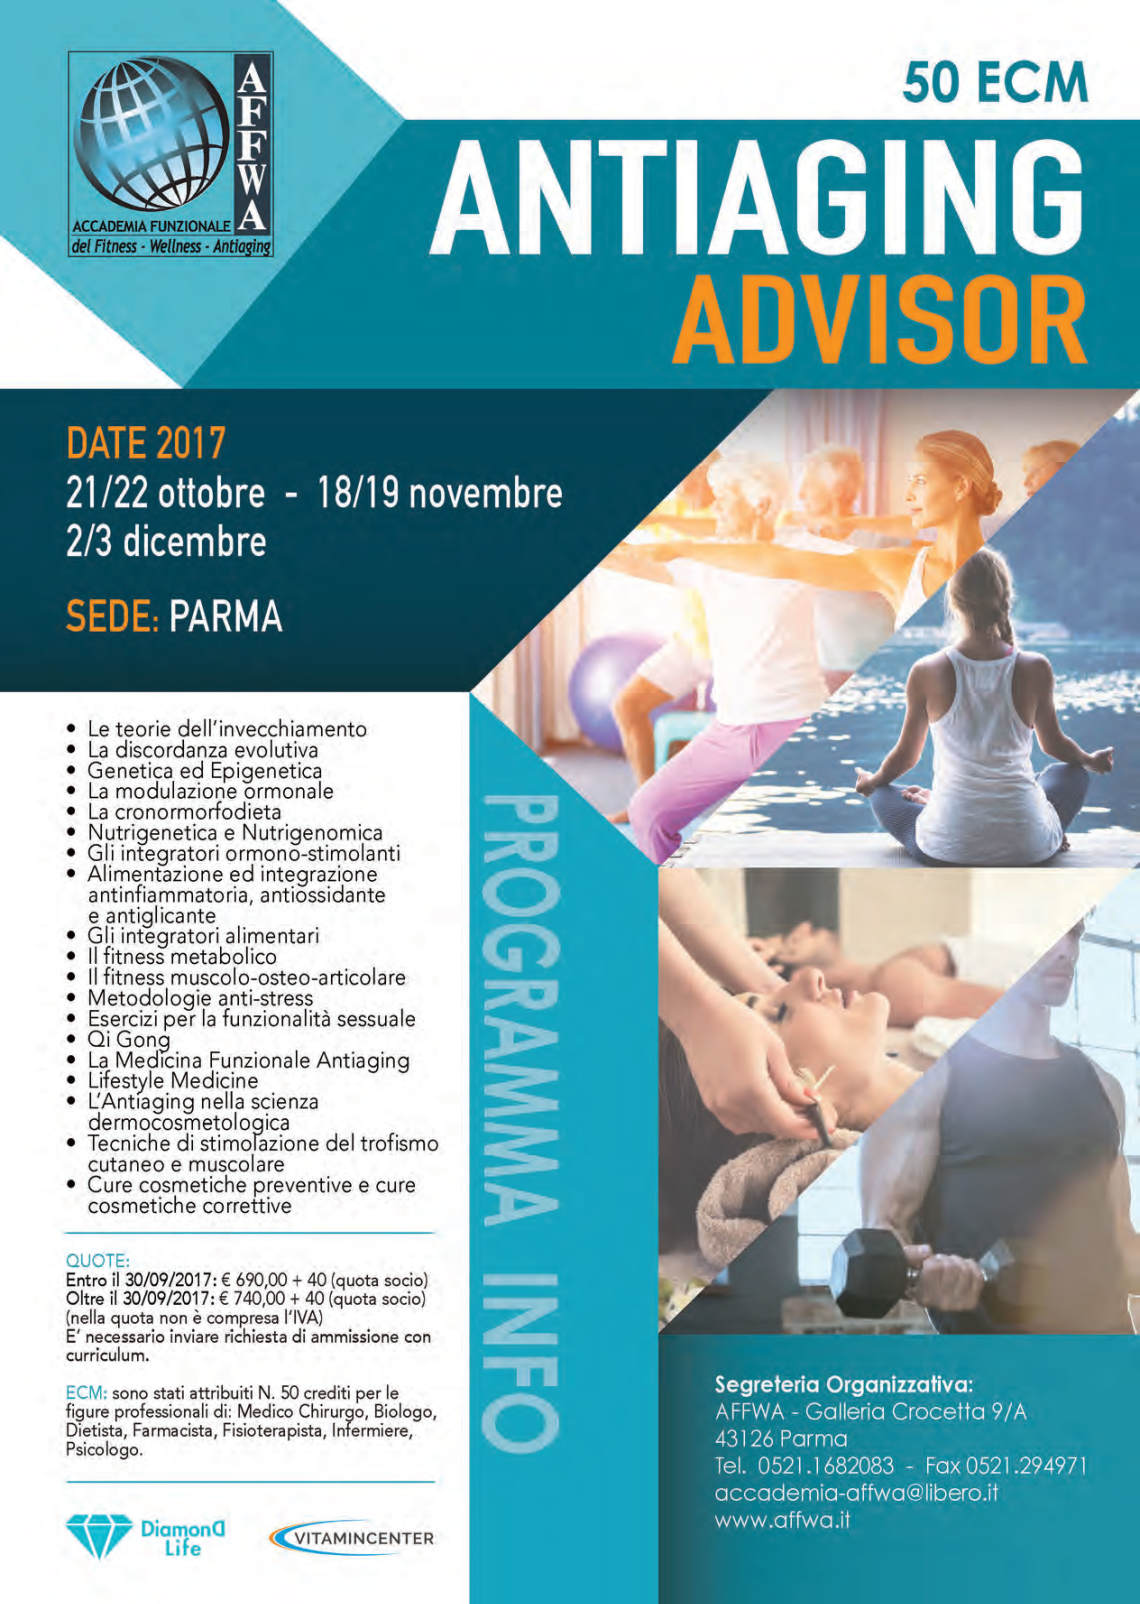 ANTIAGING ADVISOR